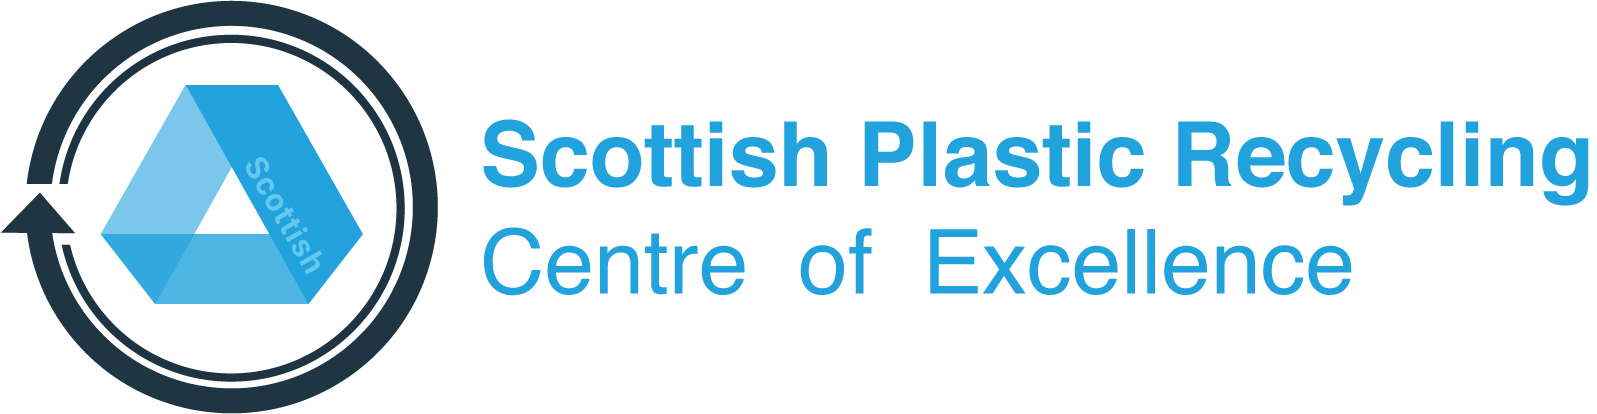 Scottish Plastic Recycling